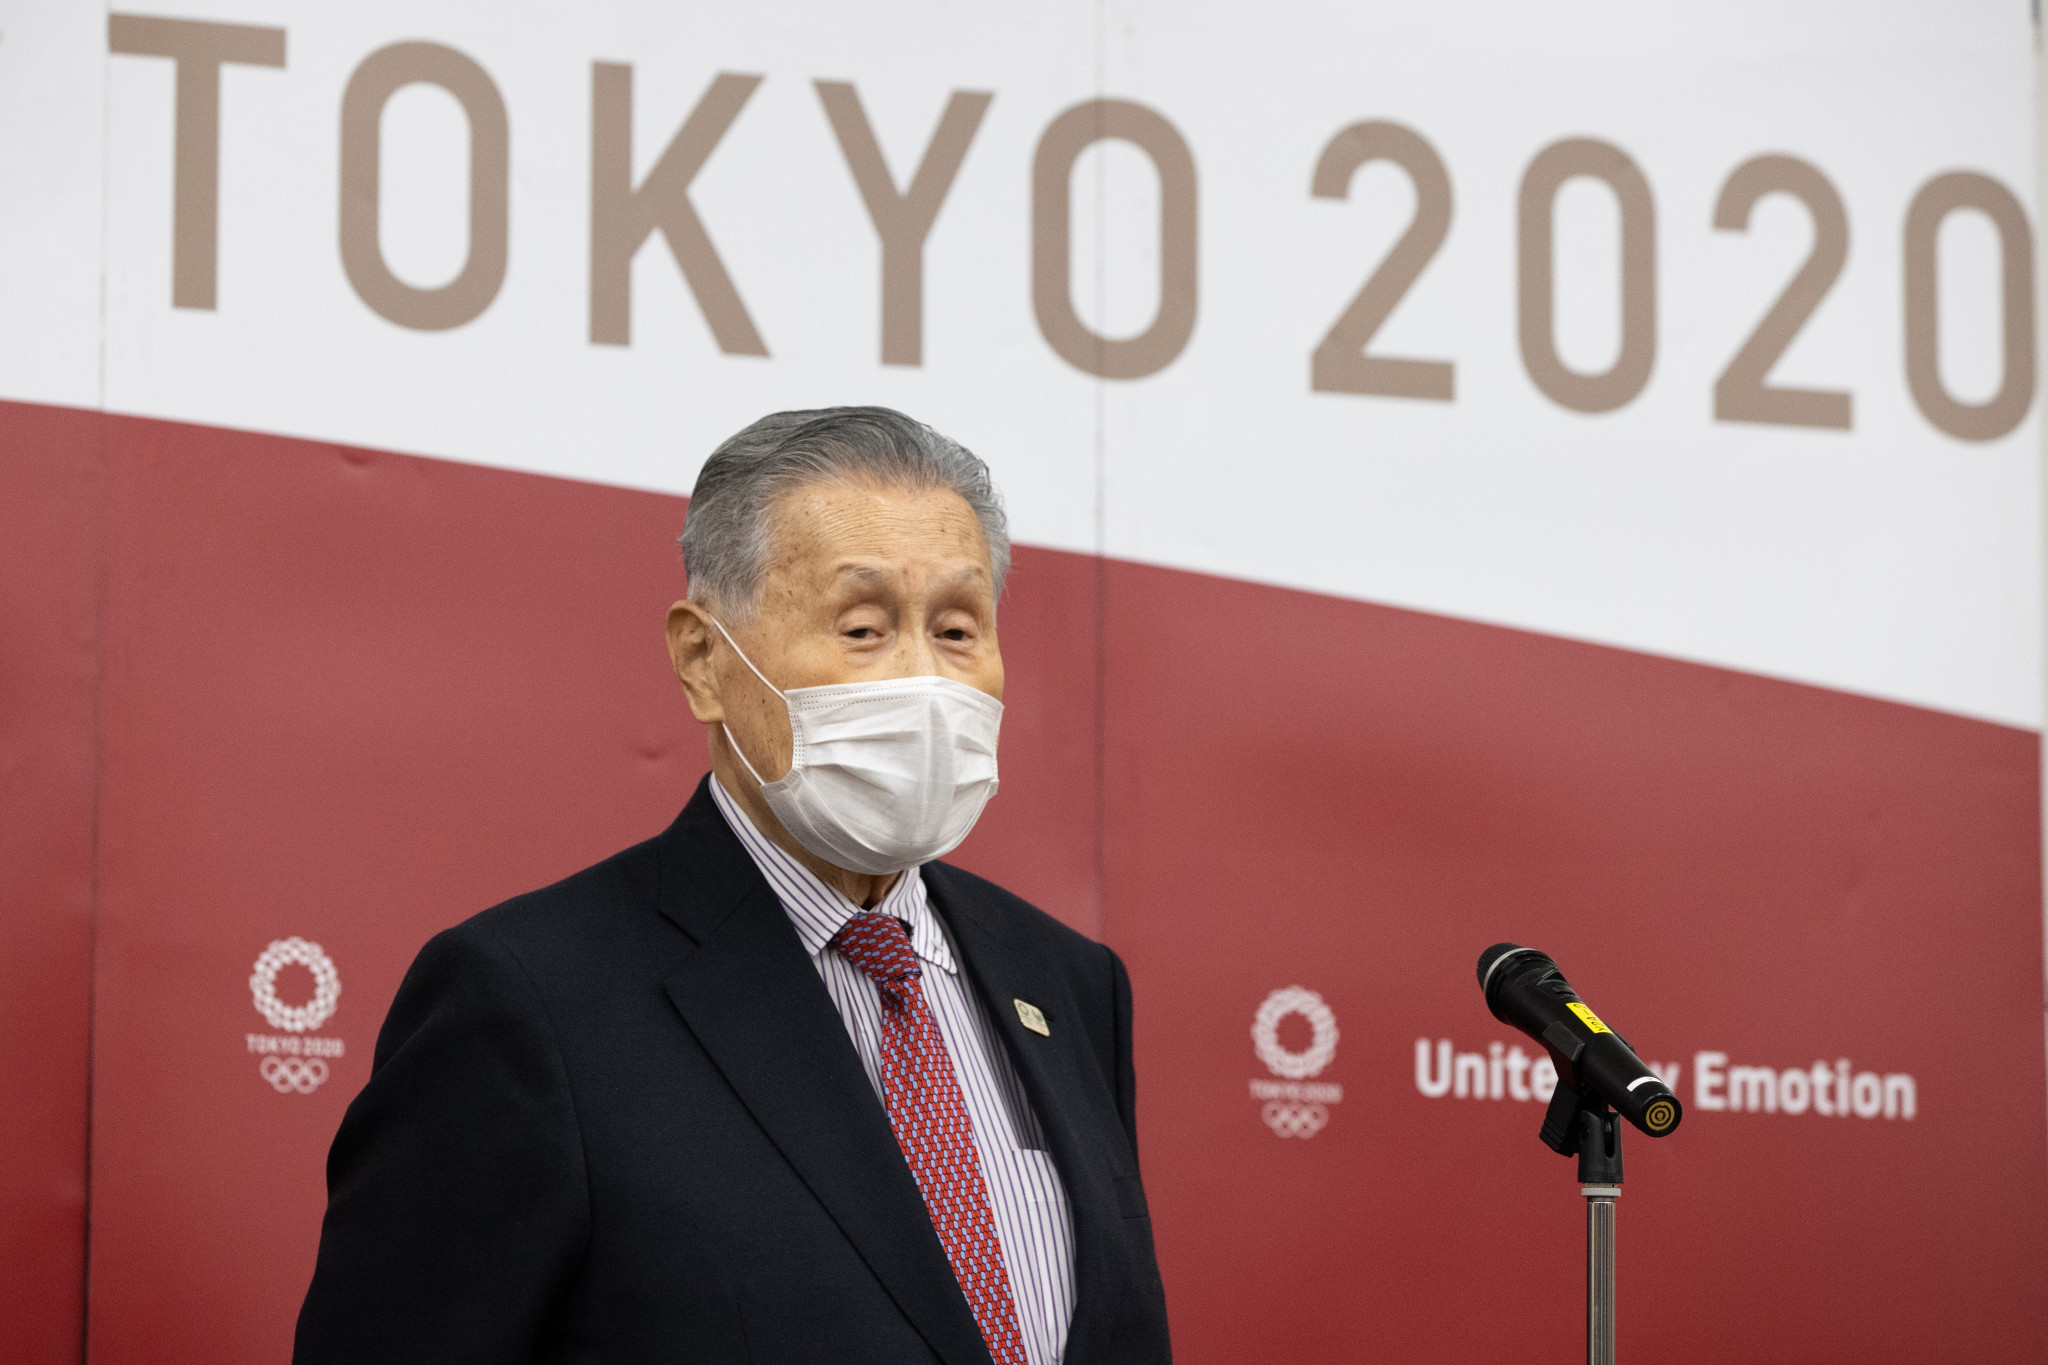 Yoshirō Mori is expected to step down from his role as Tokyo 2020 President ©Getty Images